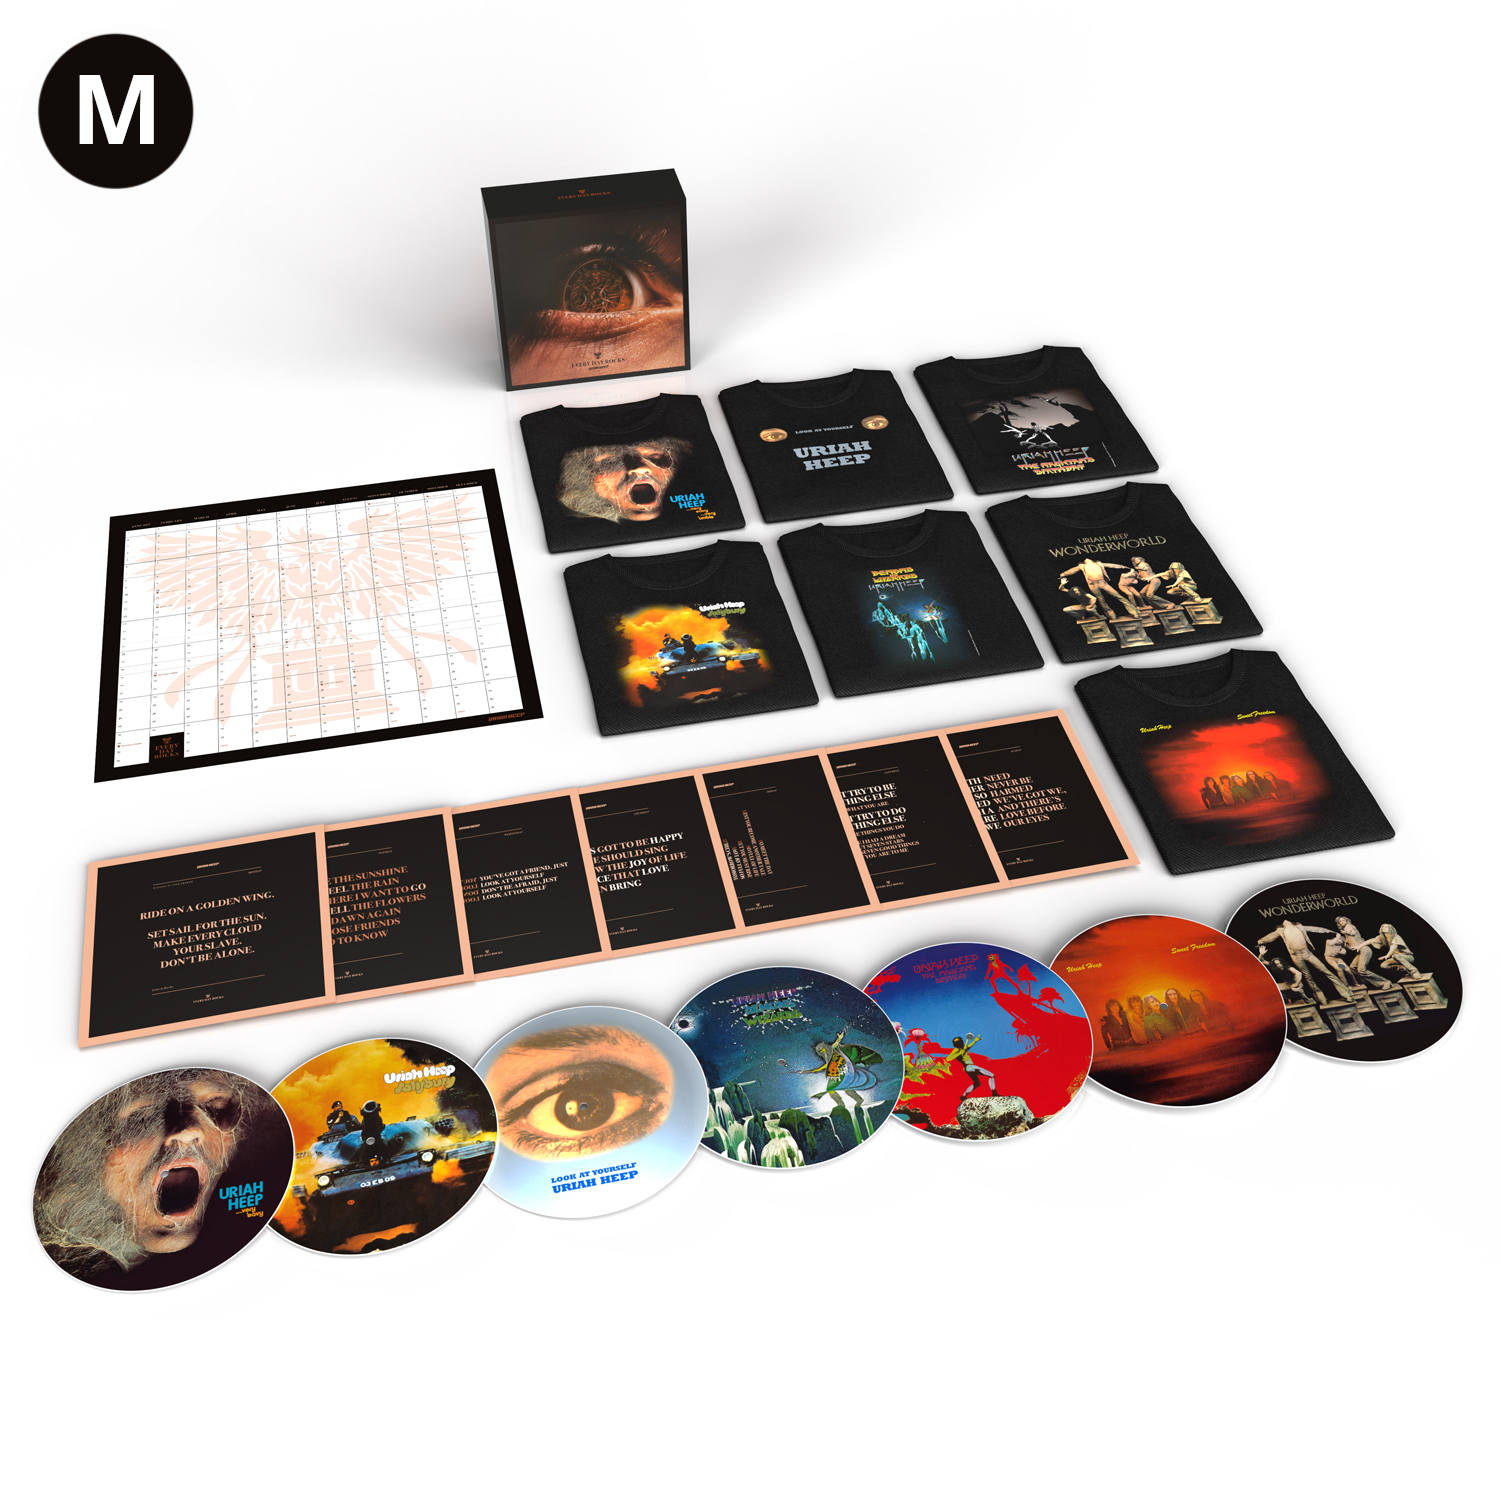 Buy Online Uriah Heep - Every Day Rocks Exclusive 7 Picture Disc Ltd Edition Boxset (Medium x 7 T-Shirts)